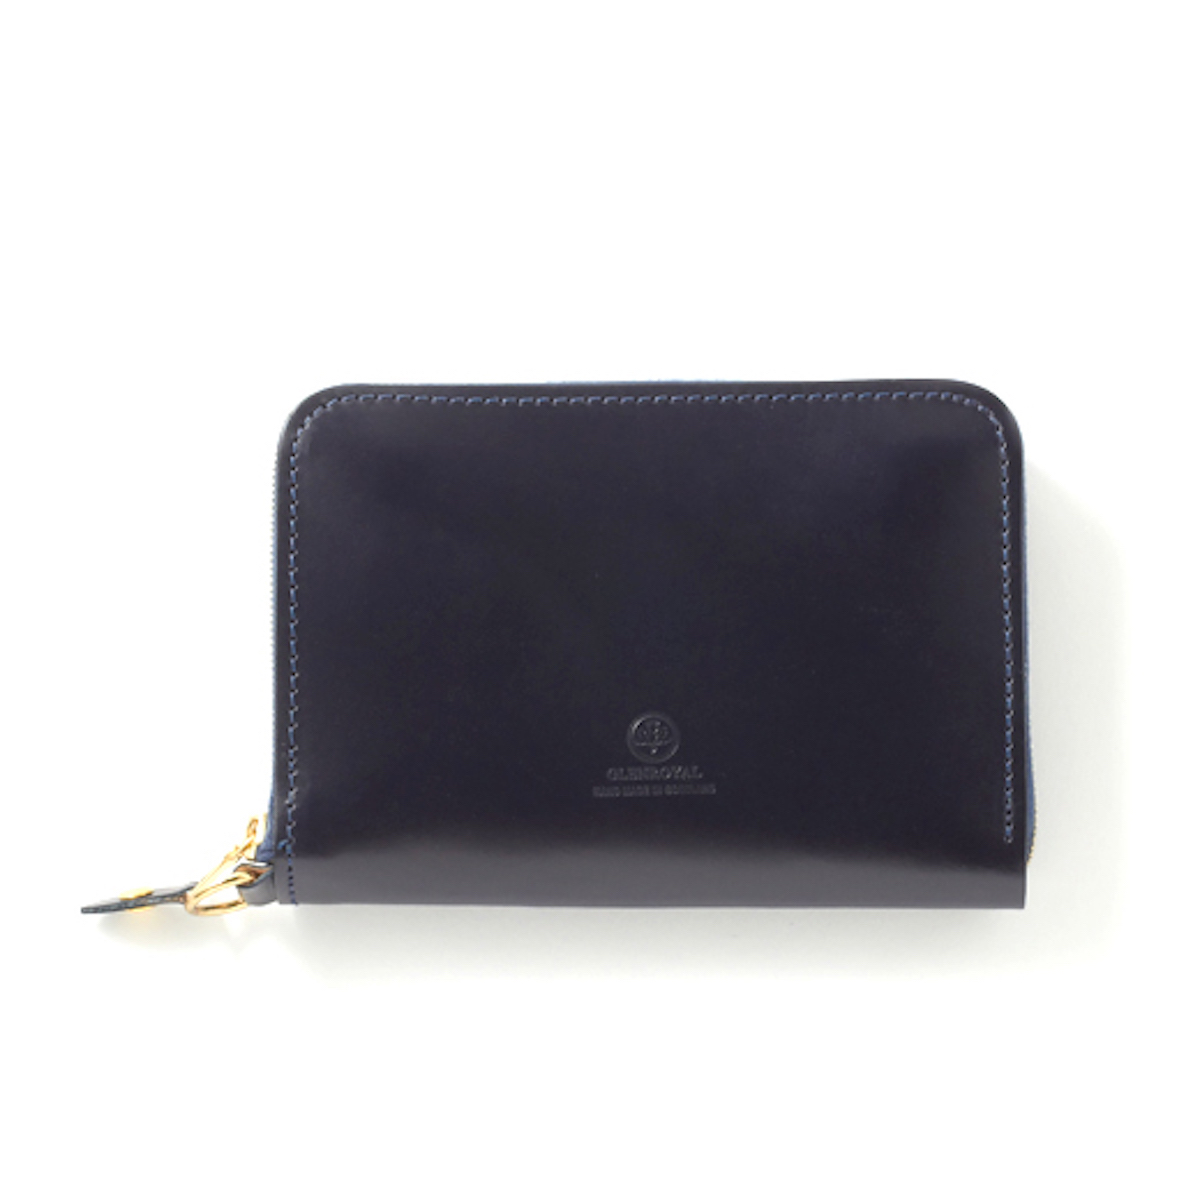 GLEN ROYAL / WALLET WITH DIVIDERS -DARK BLUE